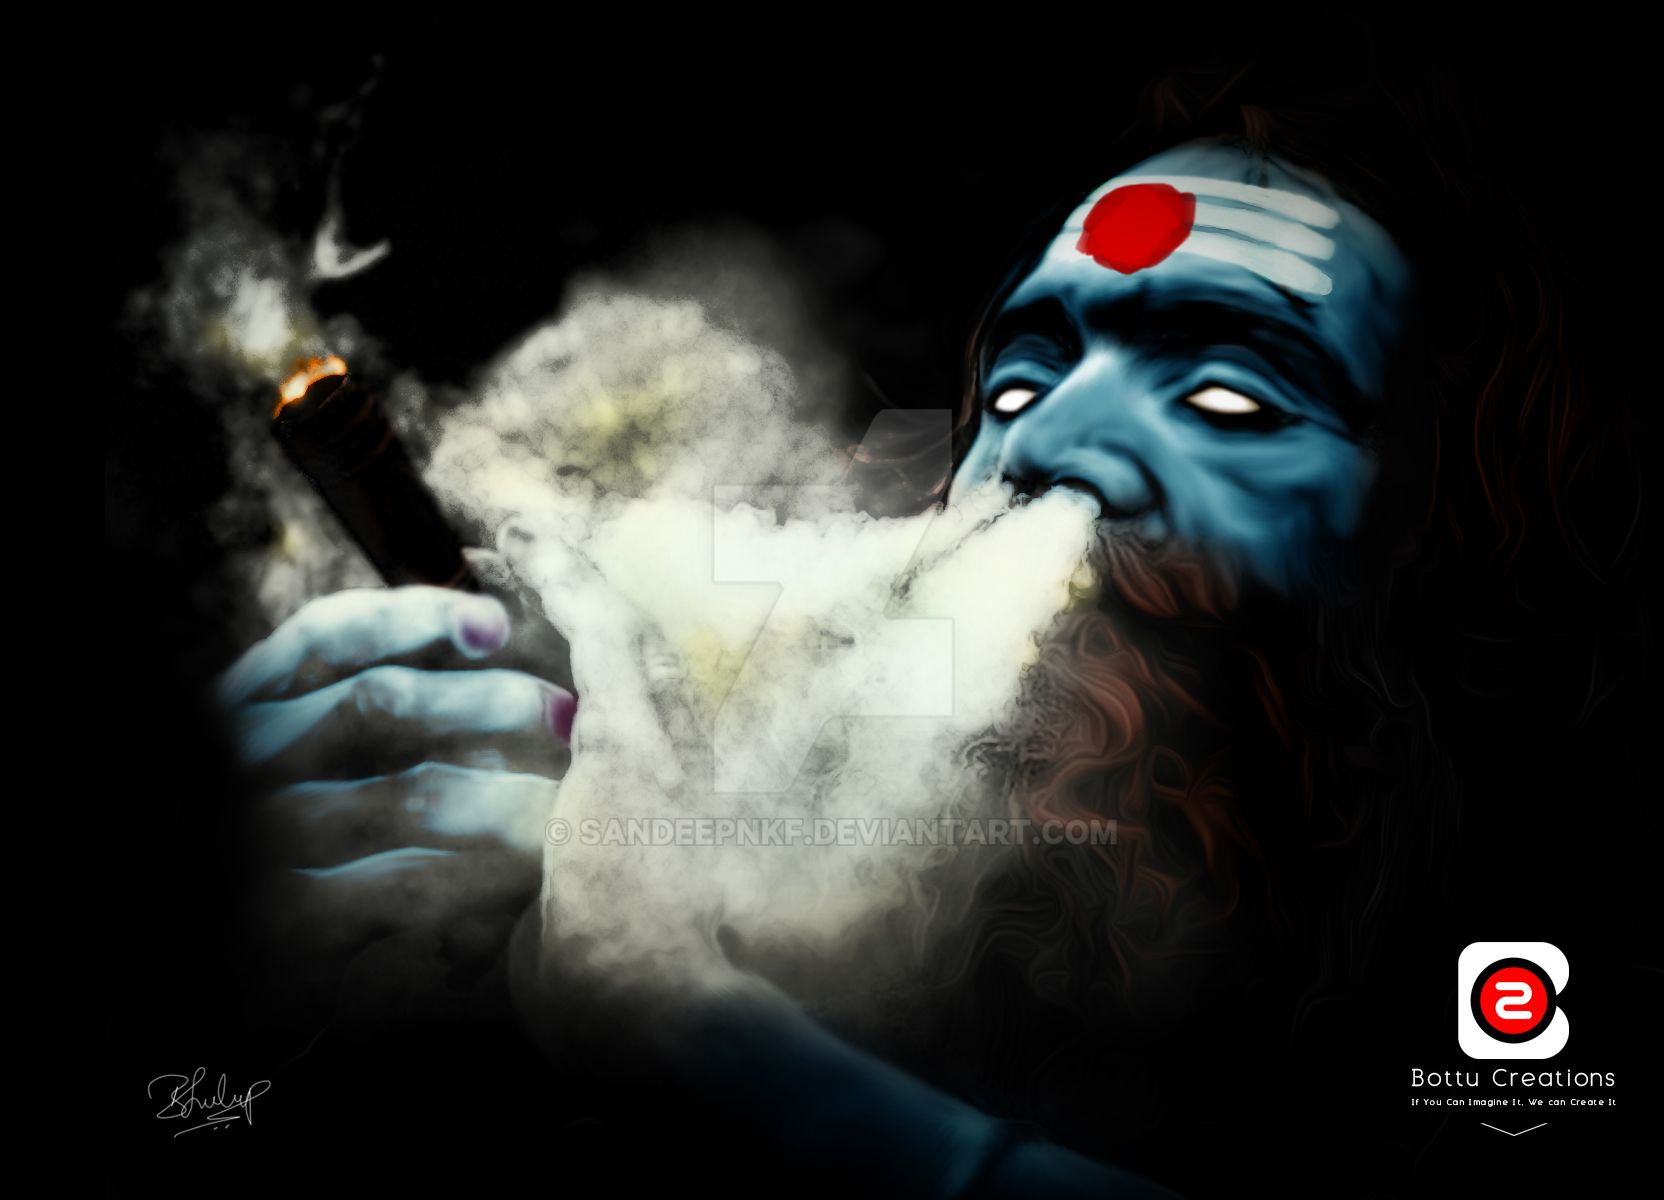 Lord Shiva Graphic Images: Lord Shiva Portrait By Bottu Creations By Sandeepnkf On